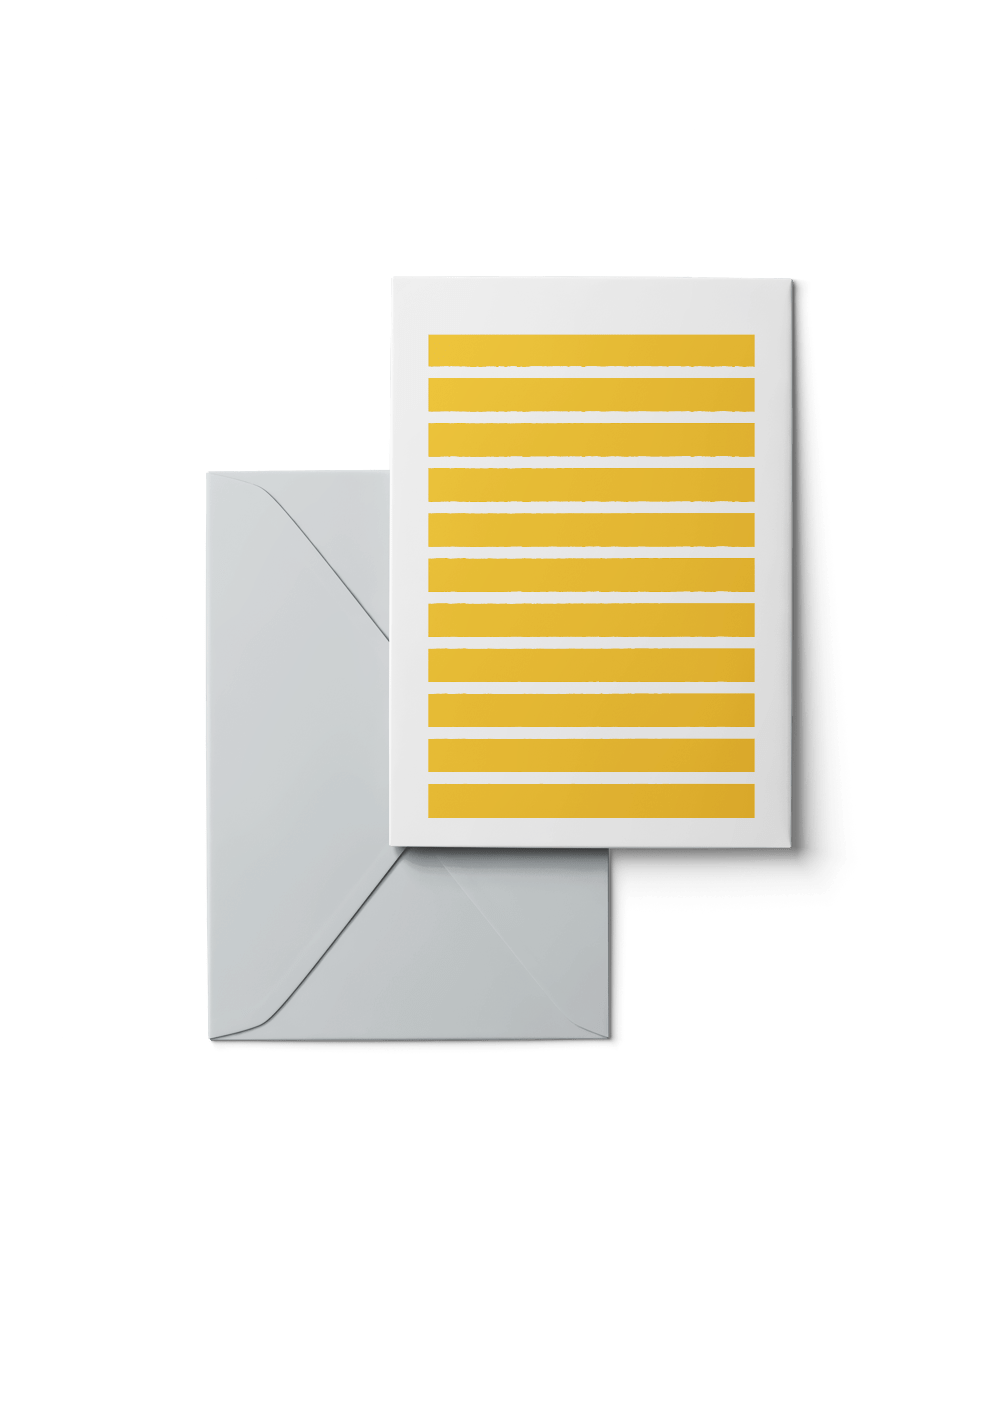 Stripetown, Yellow, Grußkarte, 6 Karten Set by Karten Design Fabrik. Supplier of designer Greeting Cards, Gift Wrap, Christmas Cards & Invitations to leading design stores including Connox, Modulor, Magazin & Manufactum.